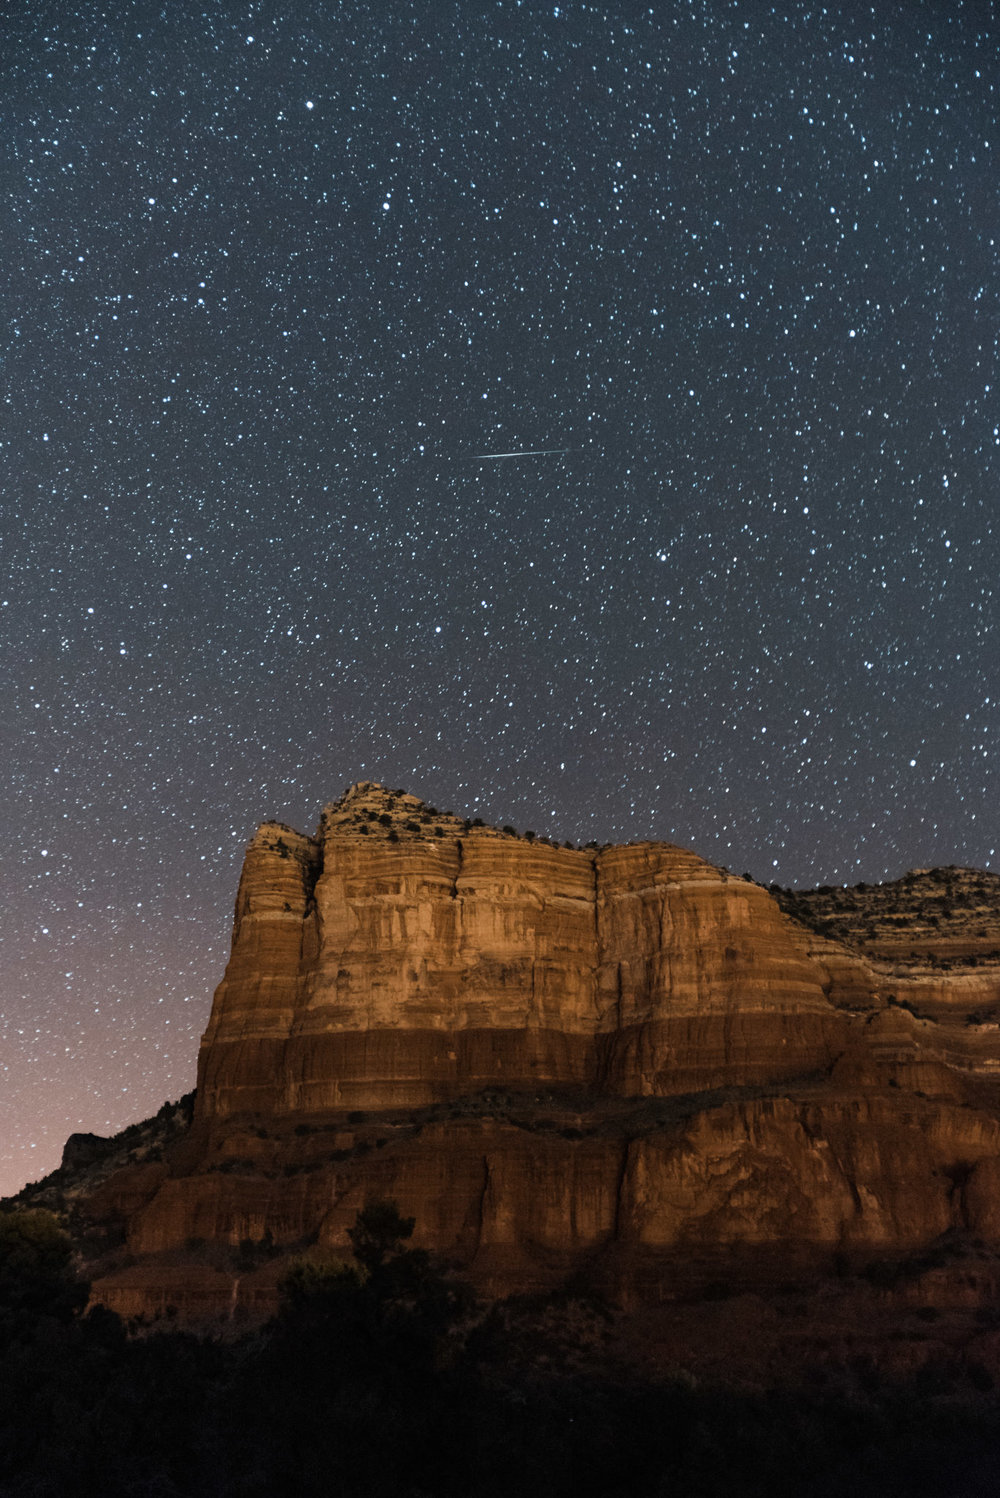 Tanner Burge Photography, Sedona Arizona, The Grand Canyon, Page AZ, Travel Blog, Adventure Photography, Snowy Landscapes, Winter in the Desert, Winter at the Grand Canyon, Grand Canyon Travel Guide, Sedona Travel Guide, Page AZ Travel Guide,  National Park Photography, South Rim of the Grand Canyon, Snow at the Grand Canyon, Snow In Arizona, Arizona Hiking, Slot Canyons, Astro Photography, Star Photography, Long Exposure Night Photography, Desert Dark Skies